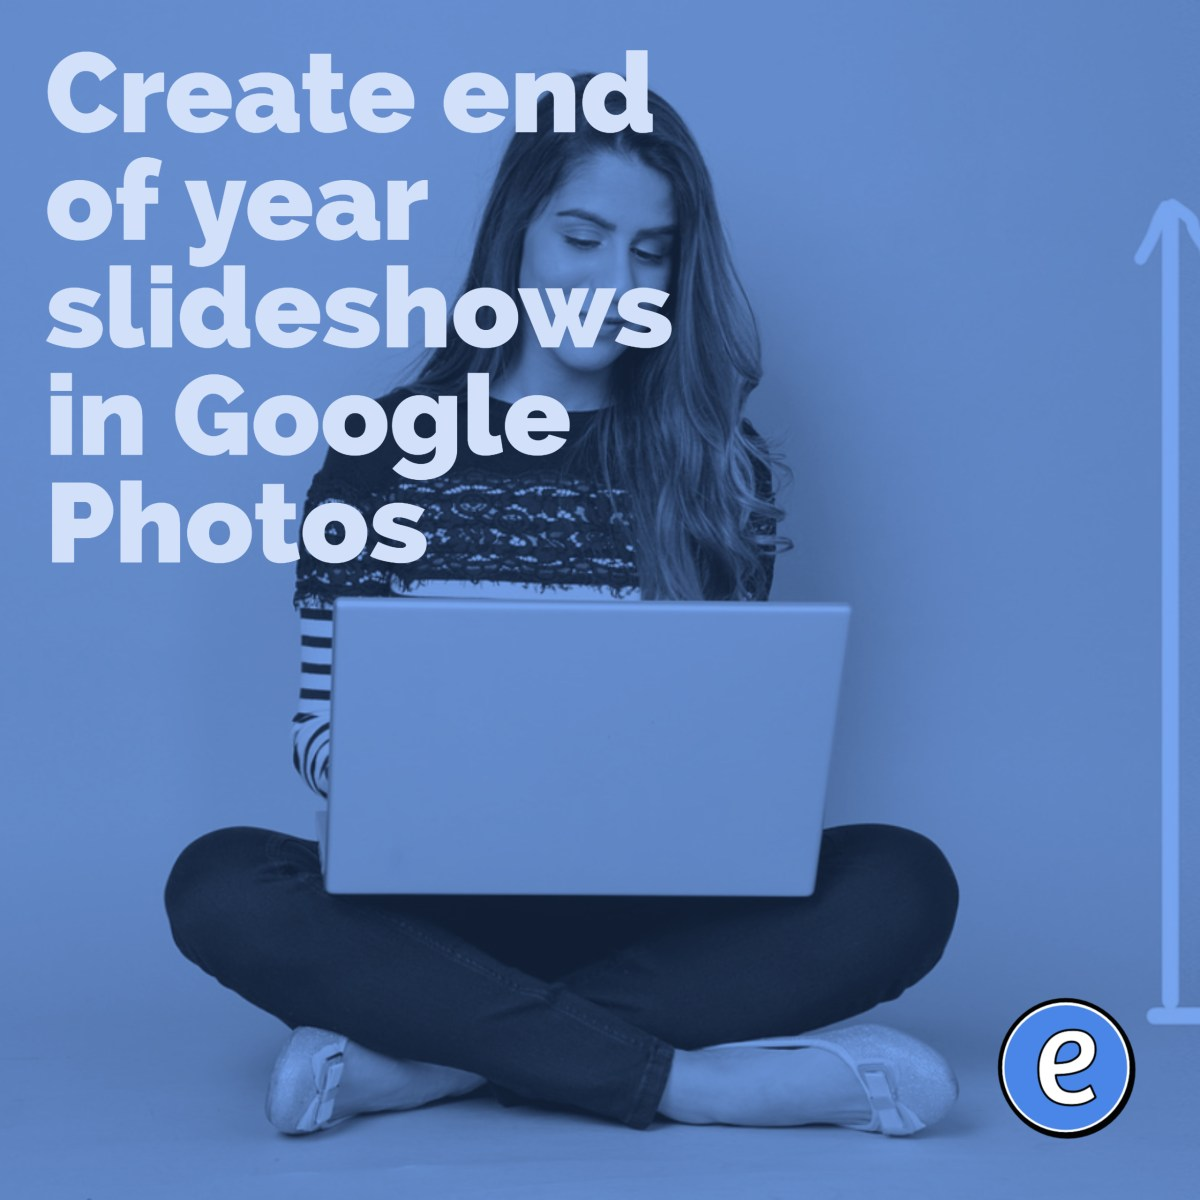 Create end of year slideshows in Google Photos